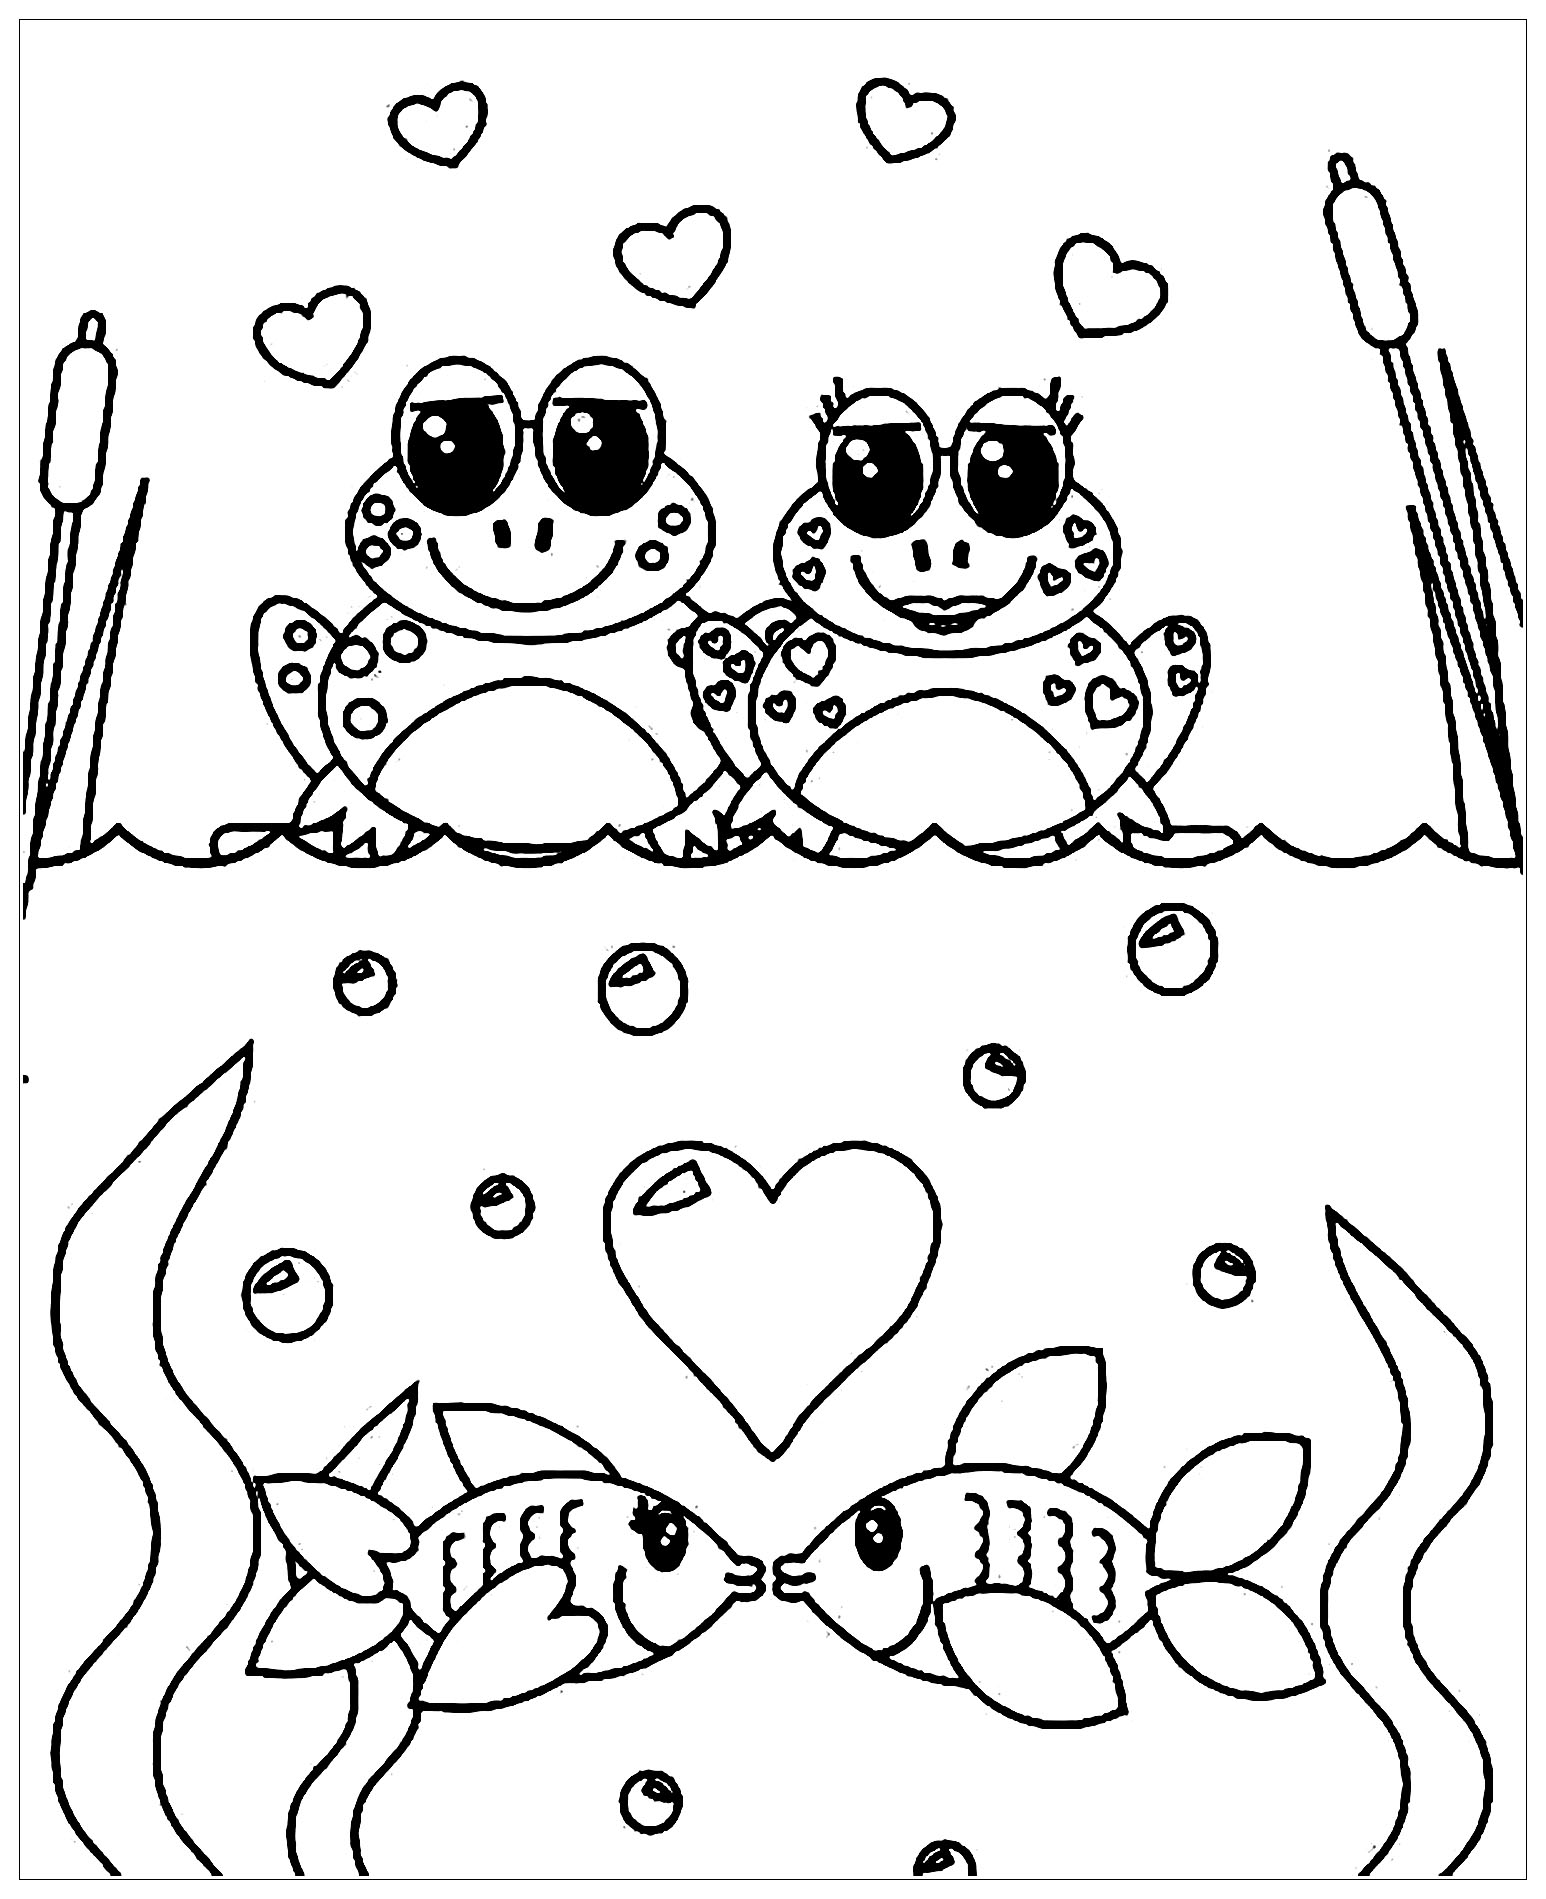 fish hooks coloring pages Elegant Fish Coloring Pages for Adults New Kids Printable Rainbow Fish